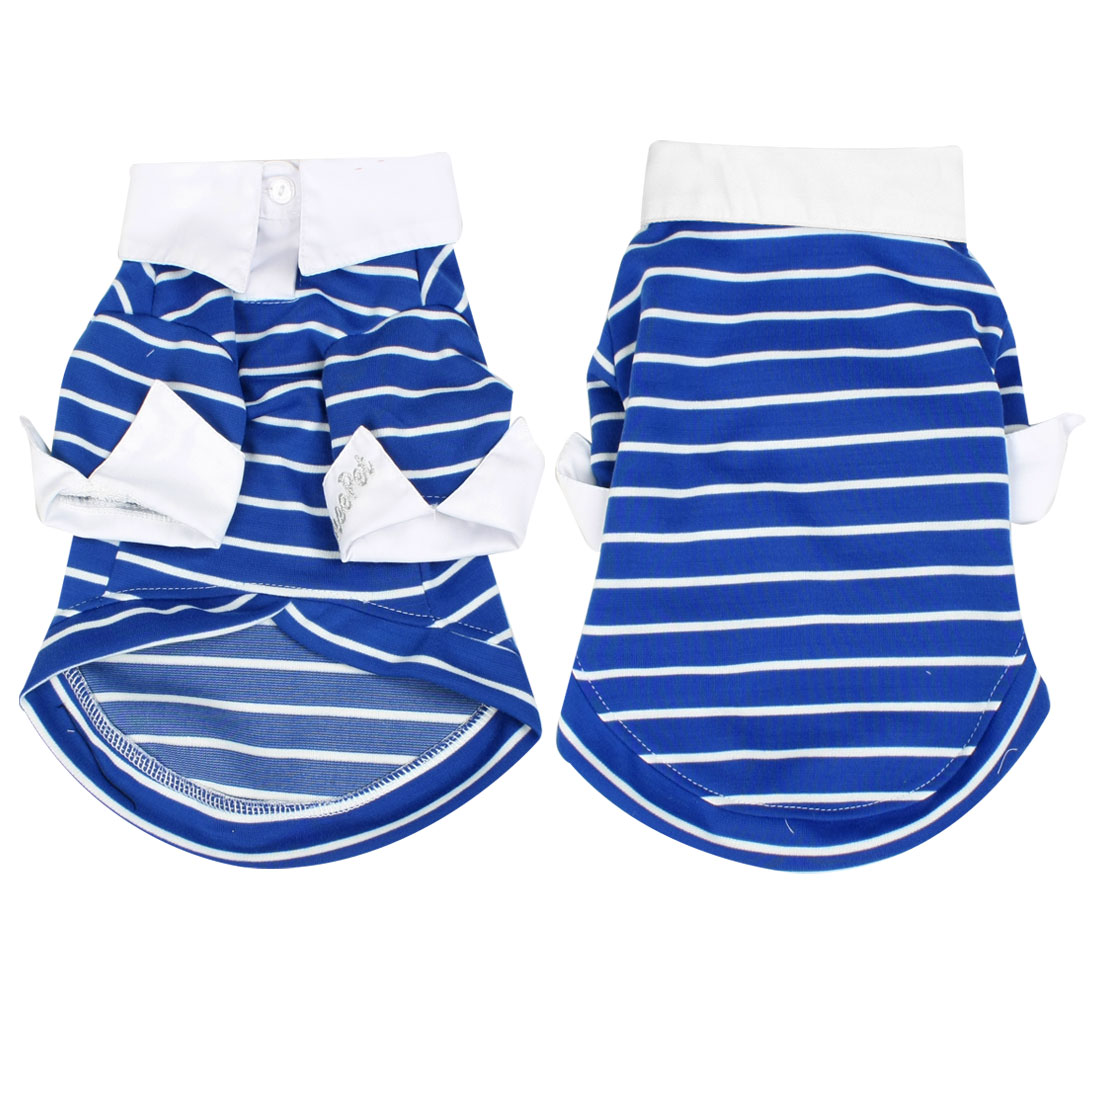 Summer Pointed Collar Striped Dog Clothes Pet Doggie Shirt Top Blue M